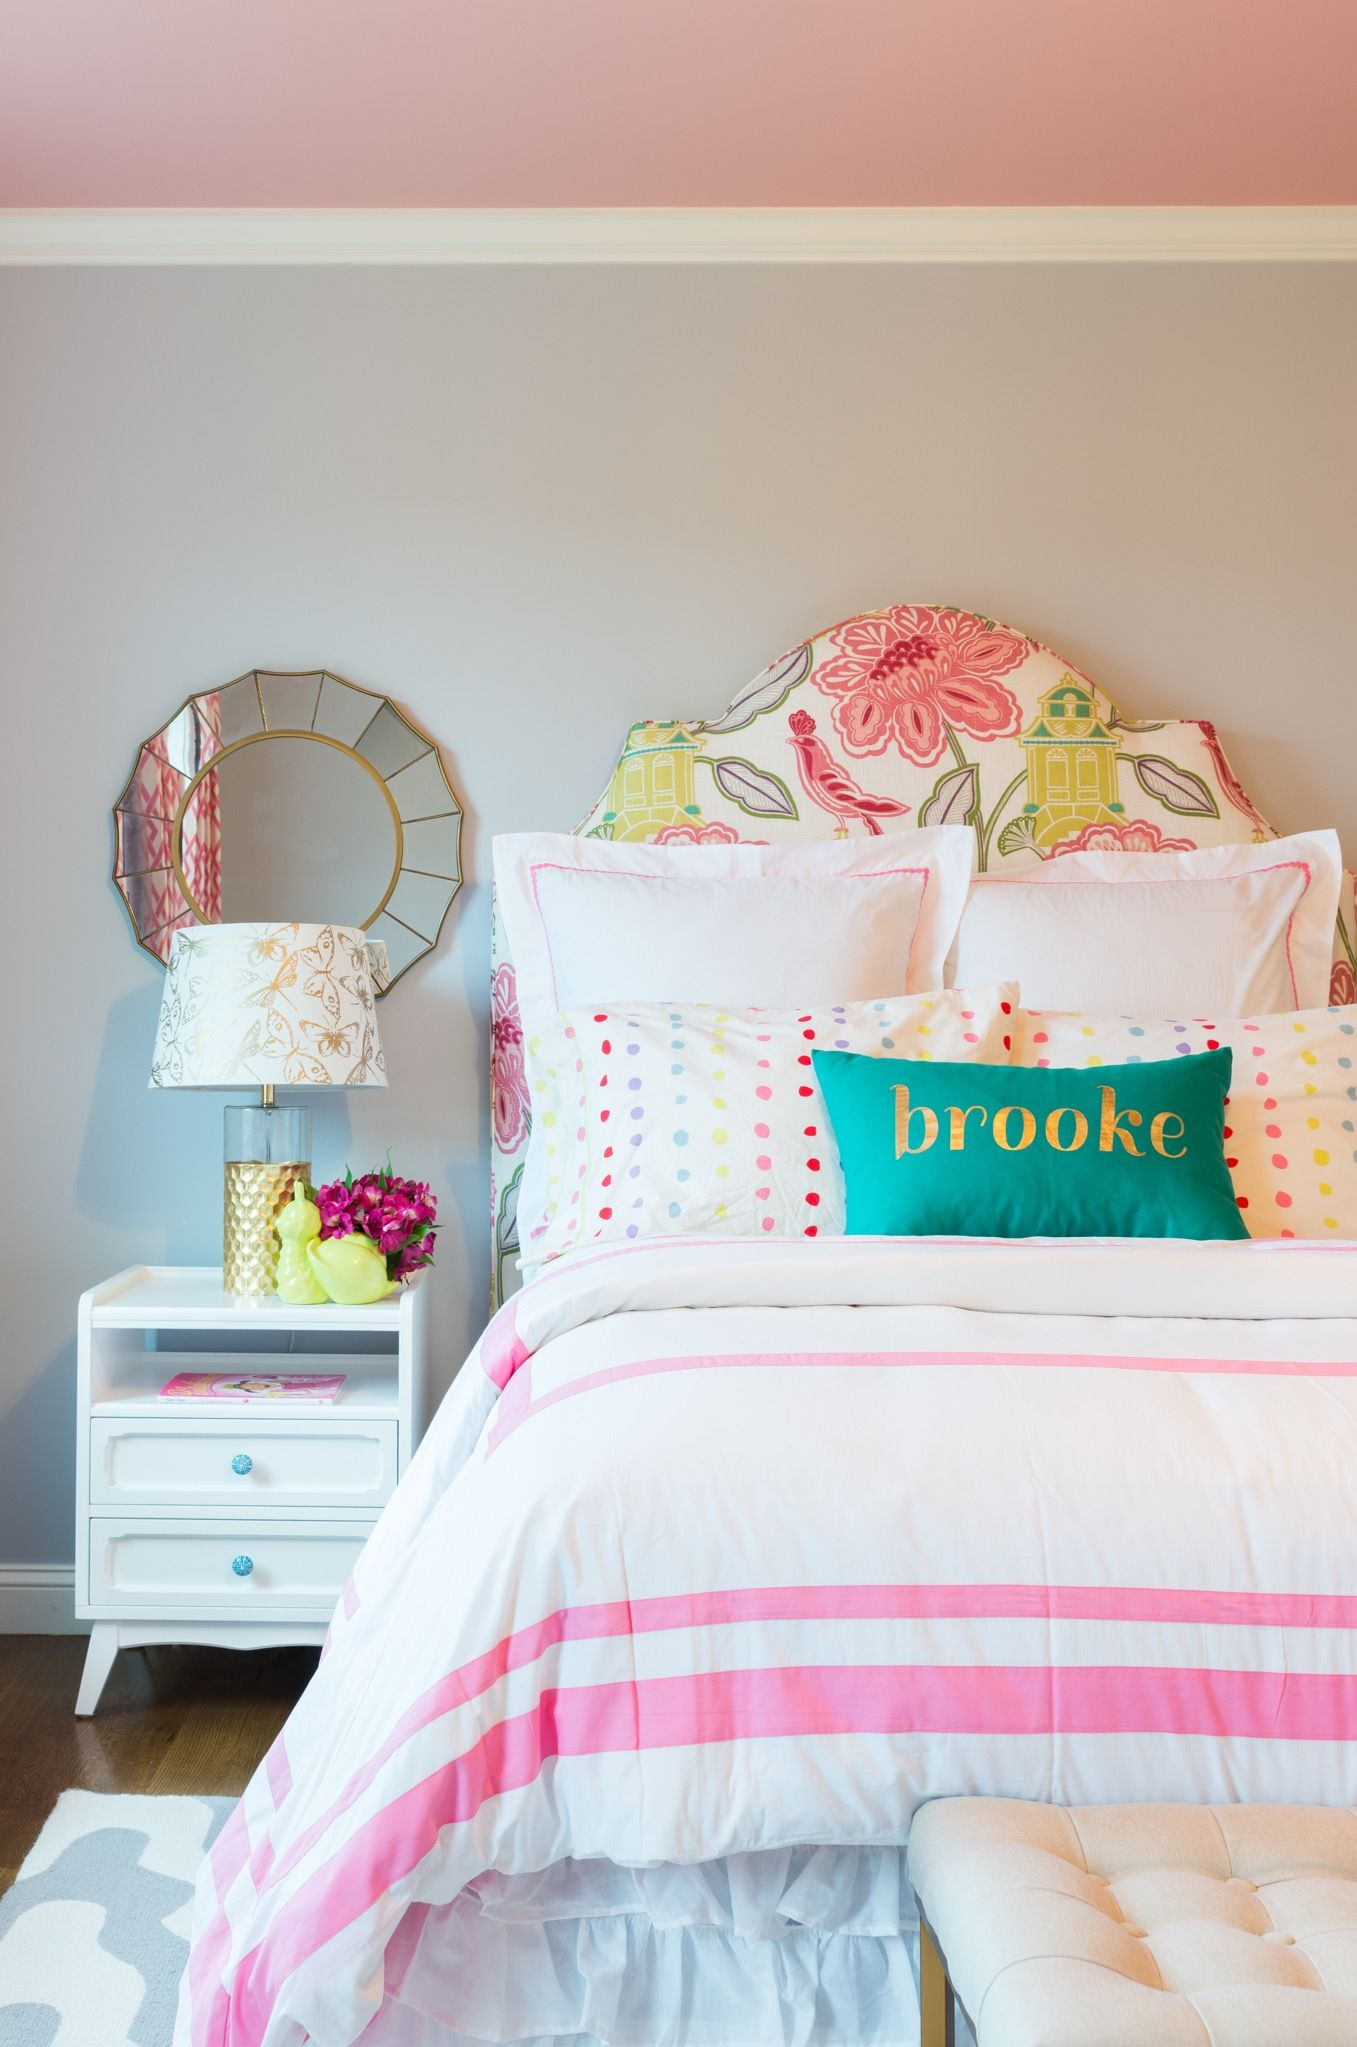 Big Girl Room Feature on Sweet Little